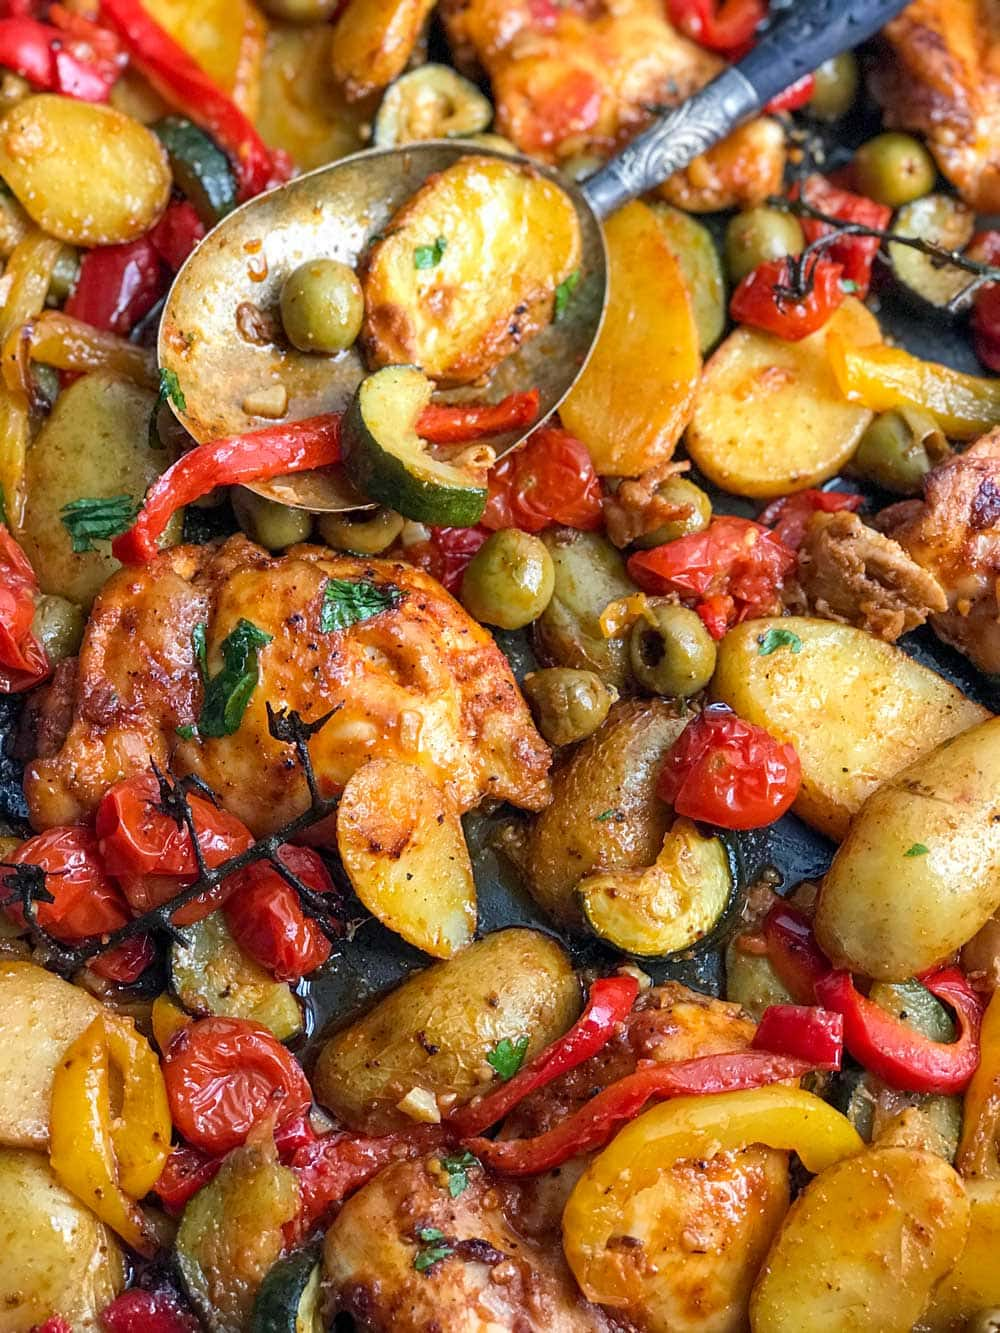 close up of a baking dish with baked boneless chicken thighs, sliced baby potatoes, red and yellow bell peppers, chunks of zucchini, green olives and cherry tomatoes.